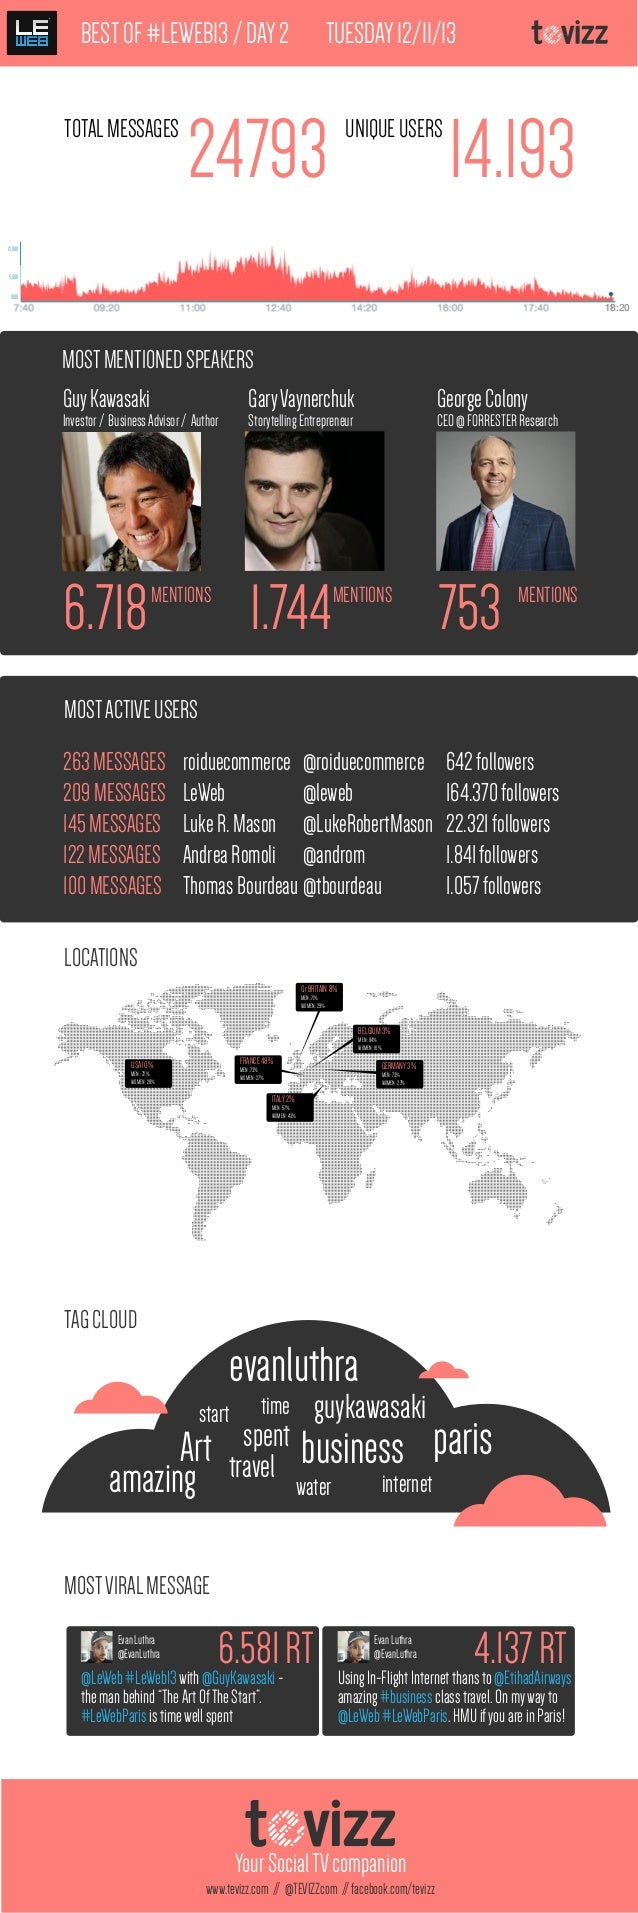 BEST OF #LEWEB13 / DAY 2 TOTAL MESSAGES  TUESDAY 12/11/13  24793  UNIQUE USERS  14.193  12.000  5000 1000  18:20  MOST MEN...